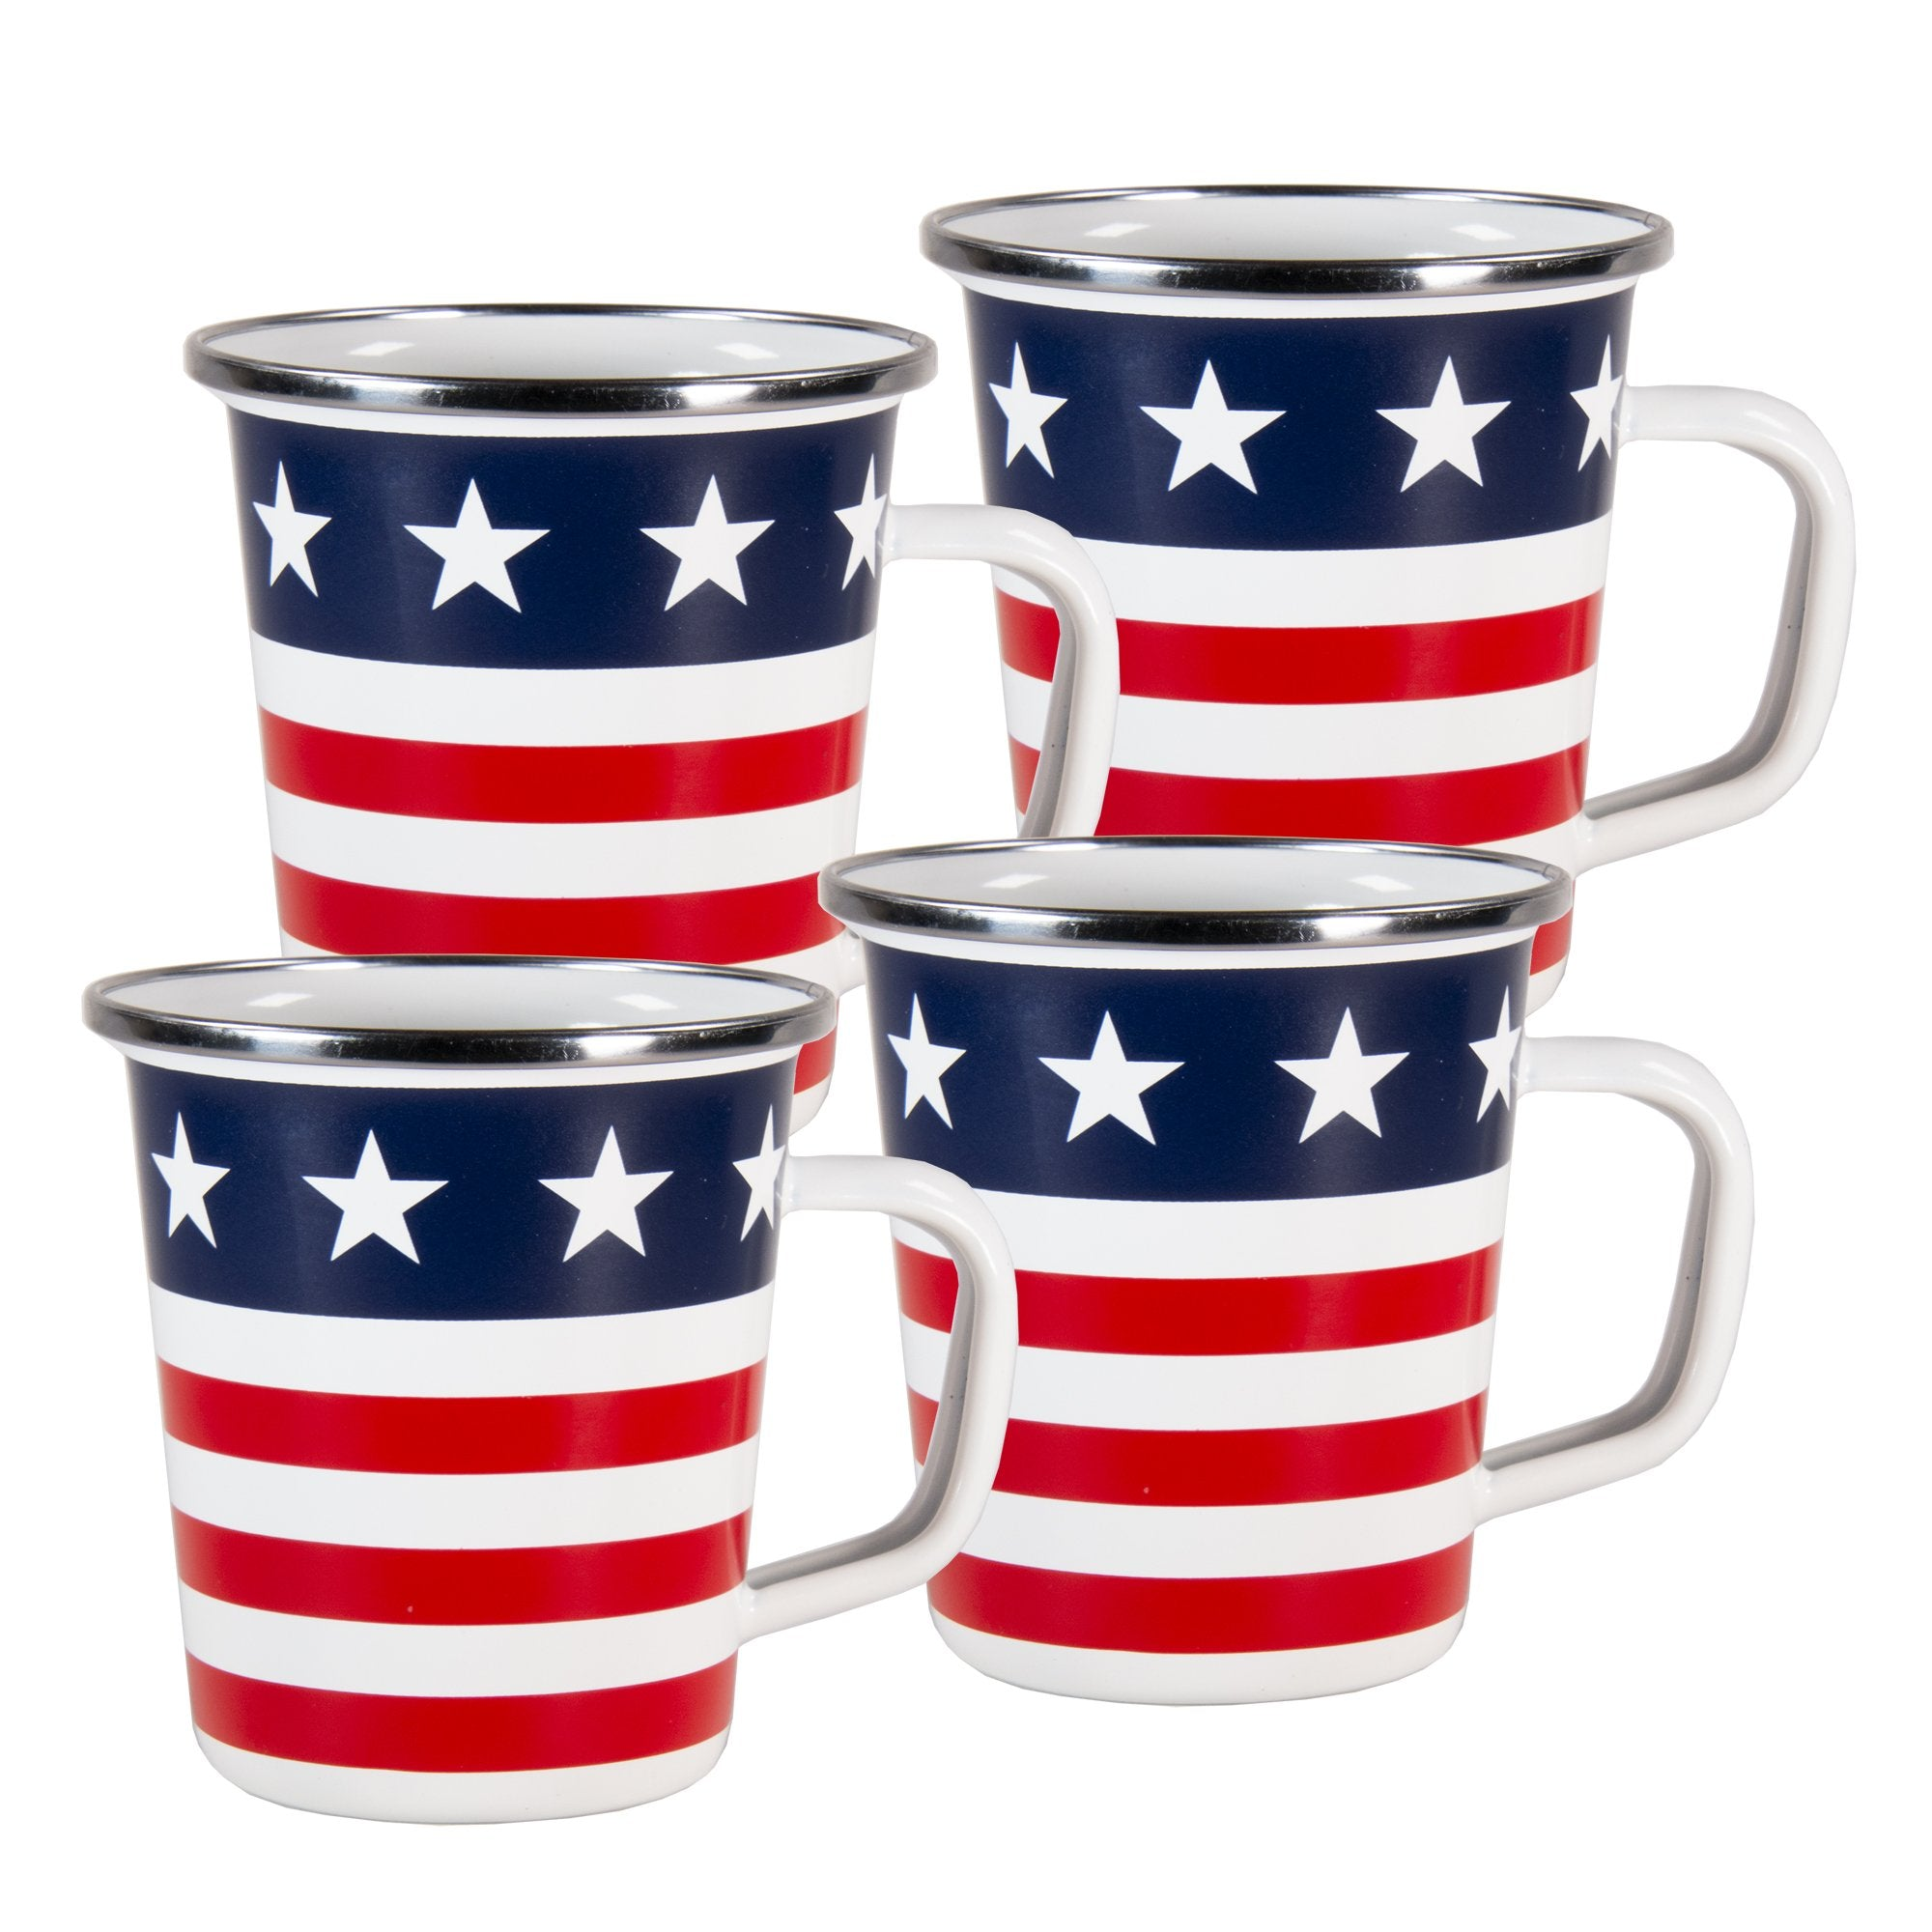 SS66S4 - Set of 4 - Stars and Stripes - Enamelware Latte Mugs